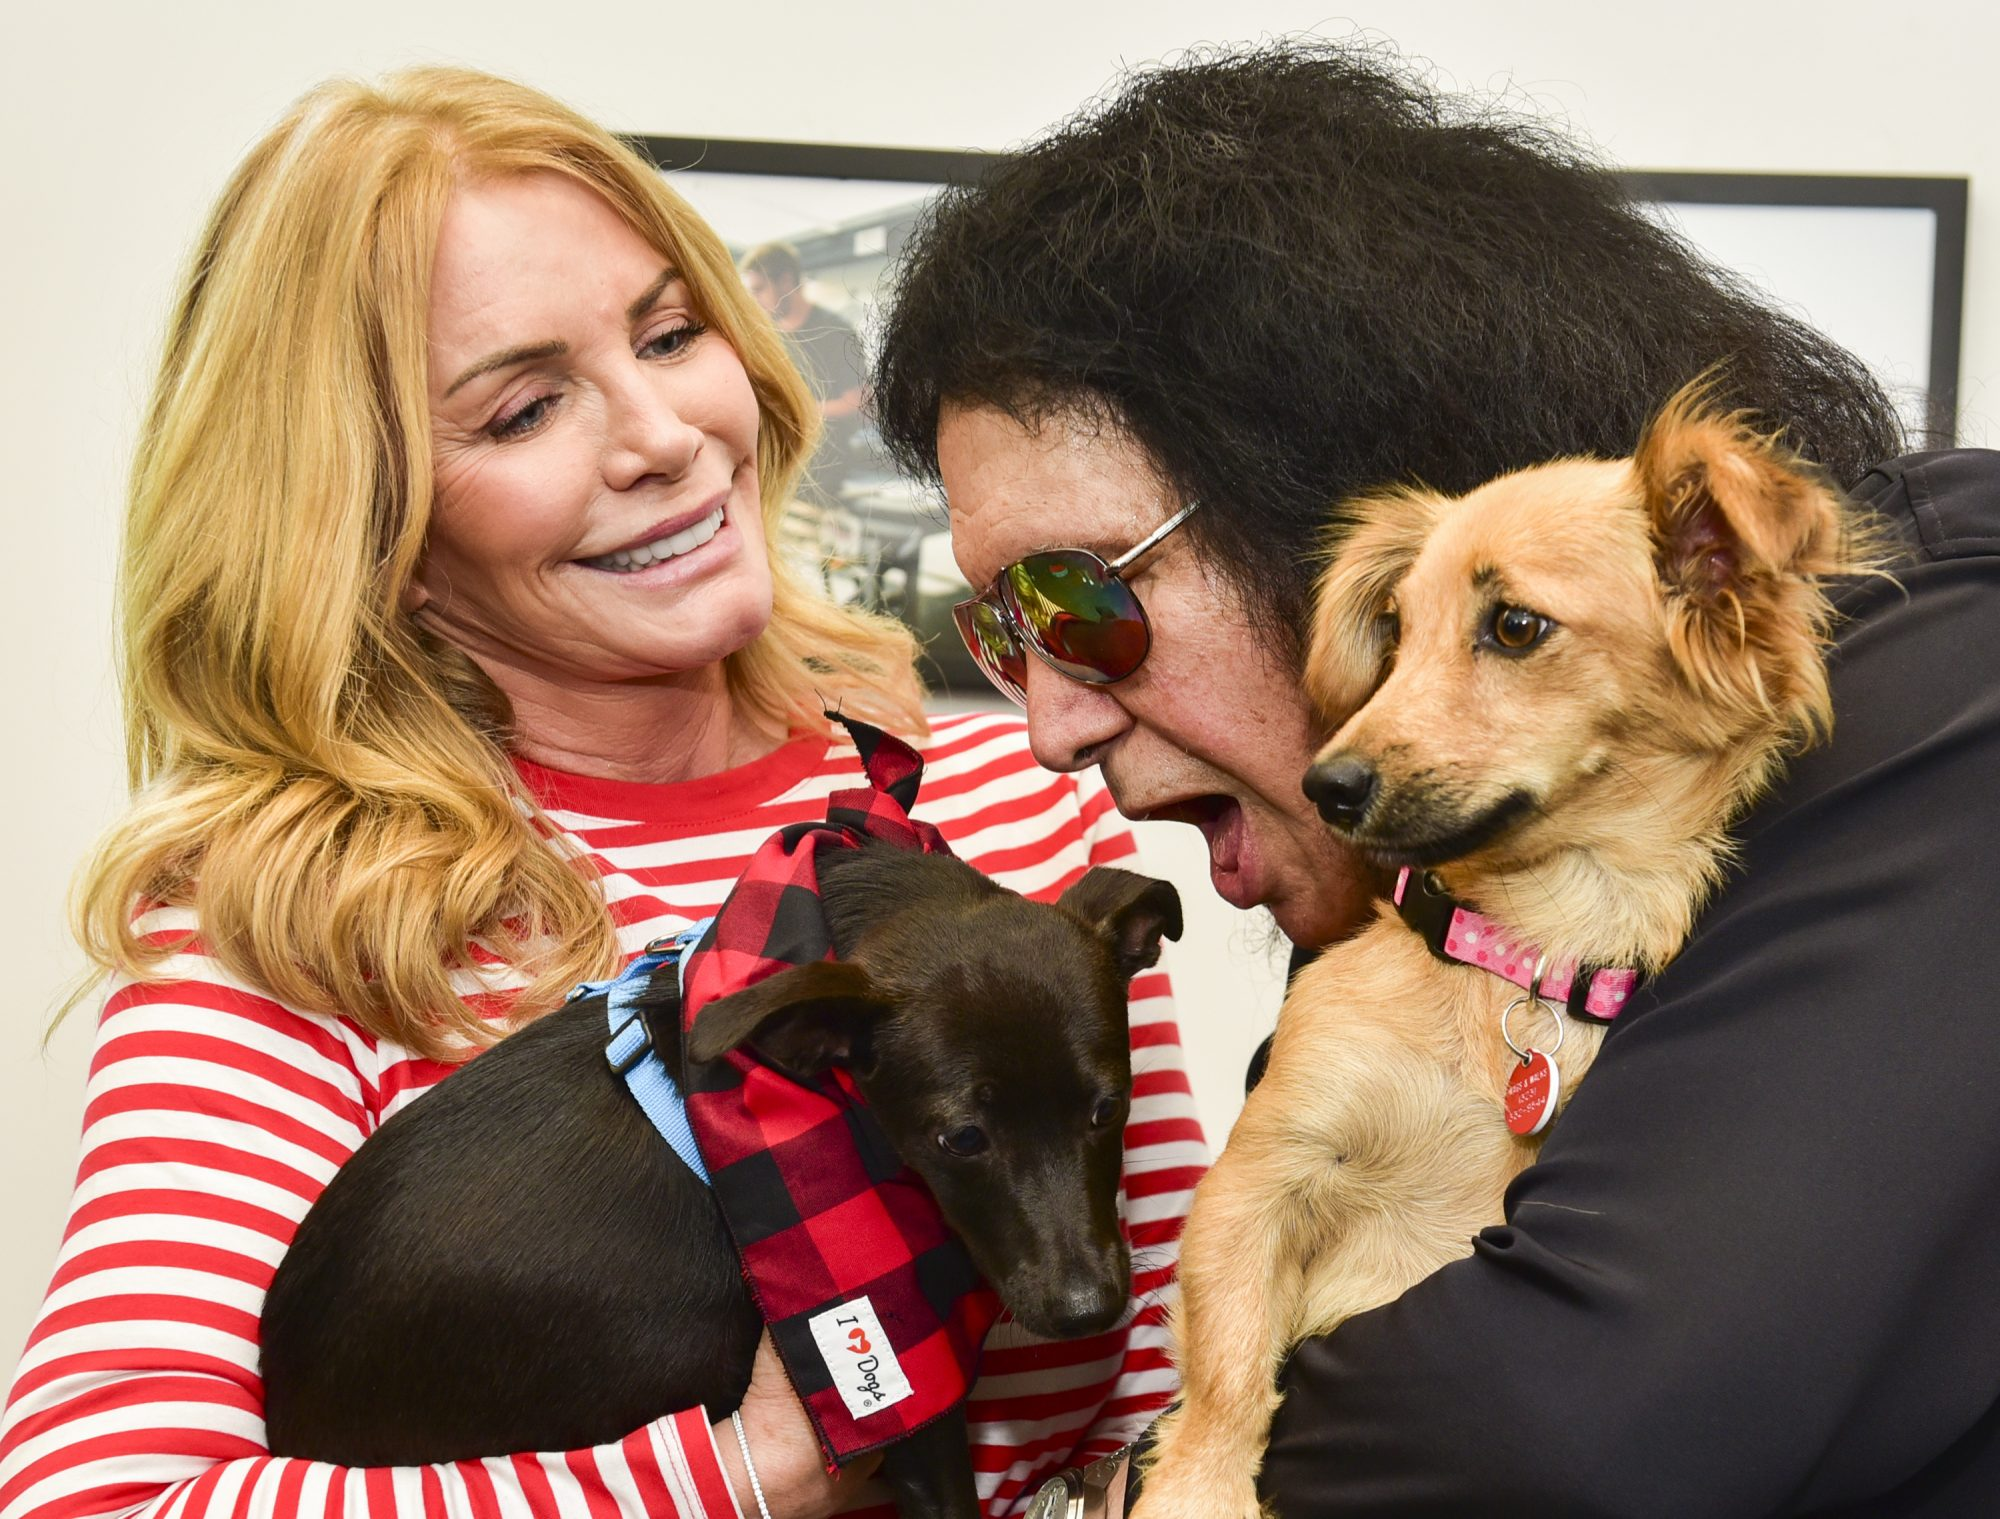 Gene Simmons Of KISS Makes Surprise Appearance At Wags & Walks Dog Rescue To Deliver Toys And Treats Provided By iHeartDogs.com